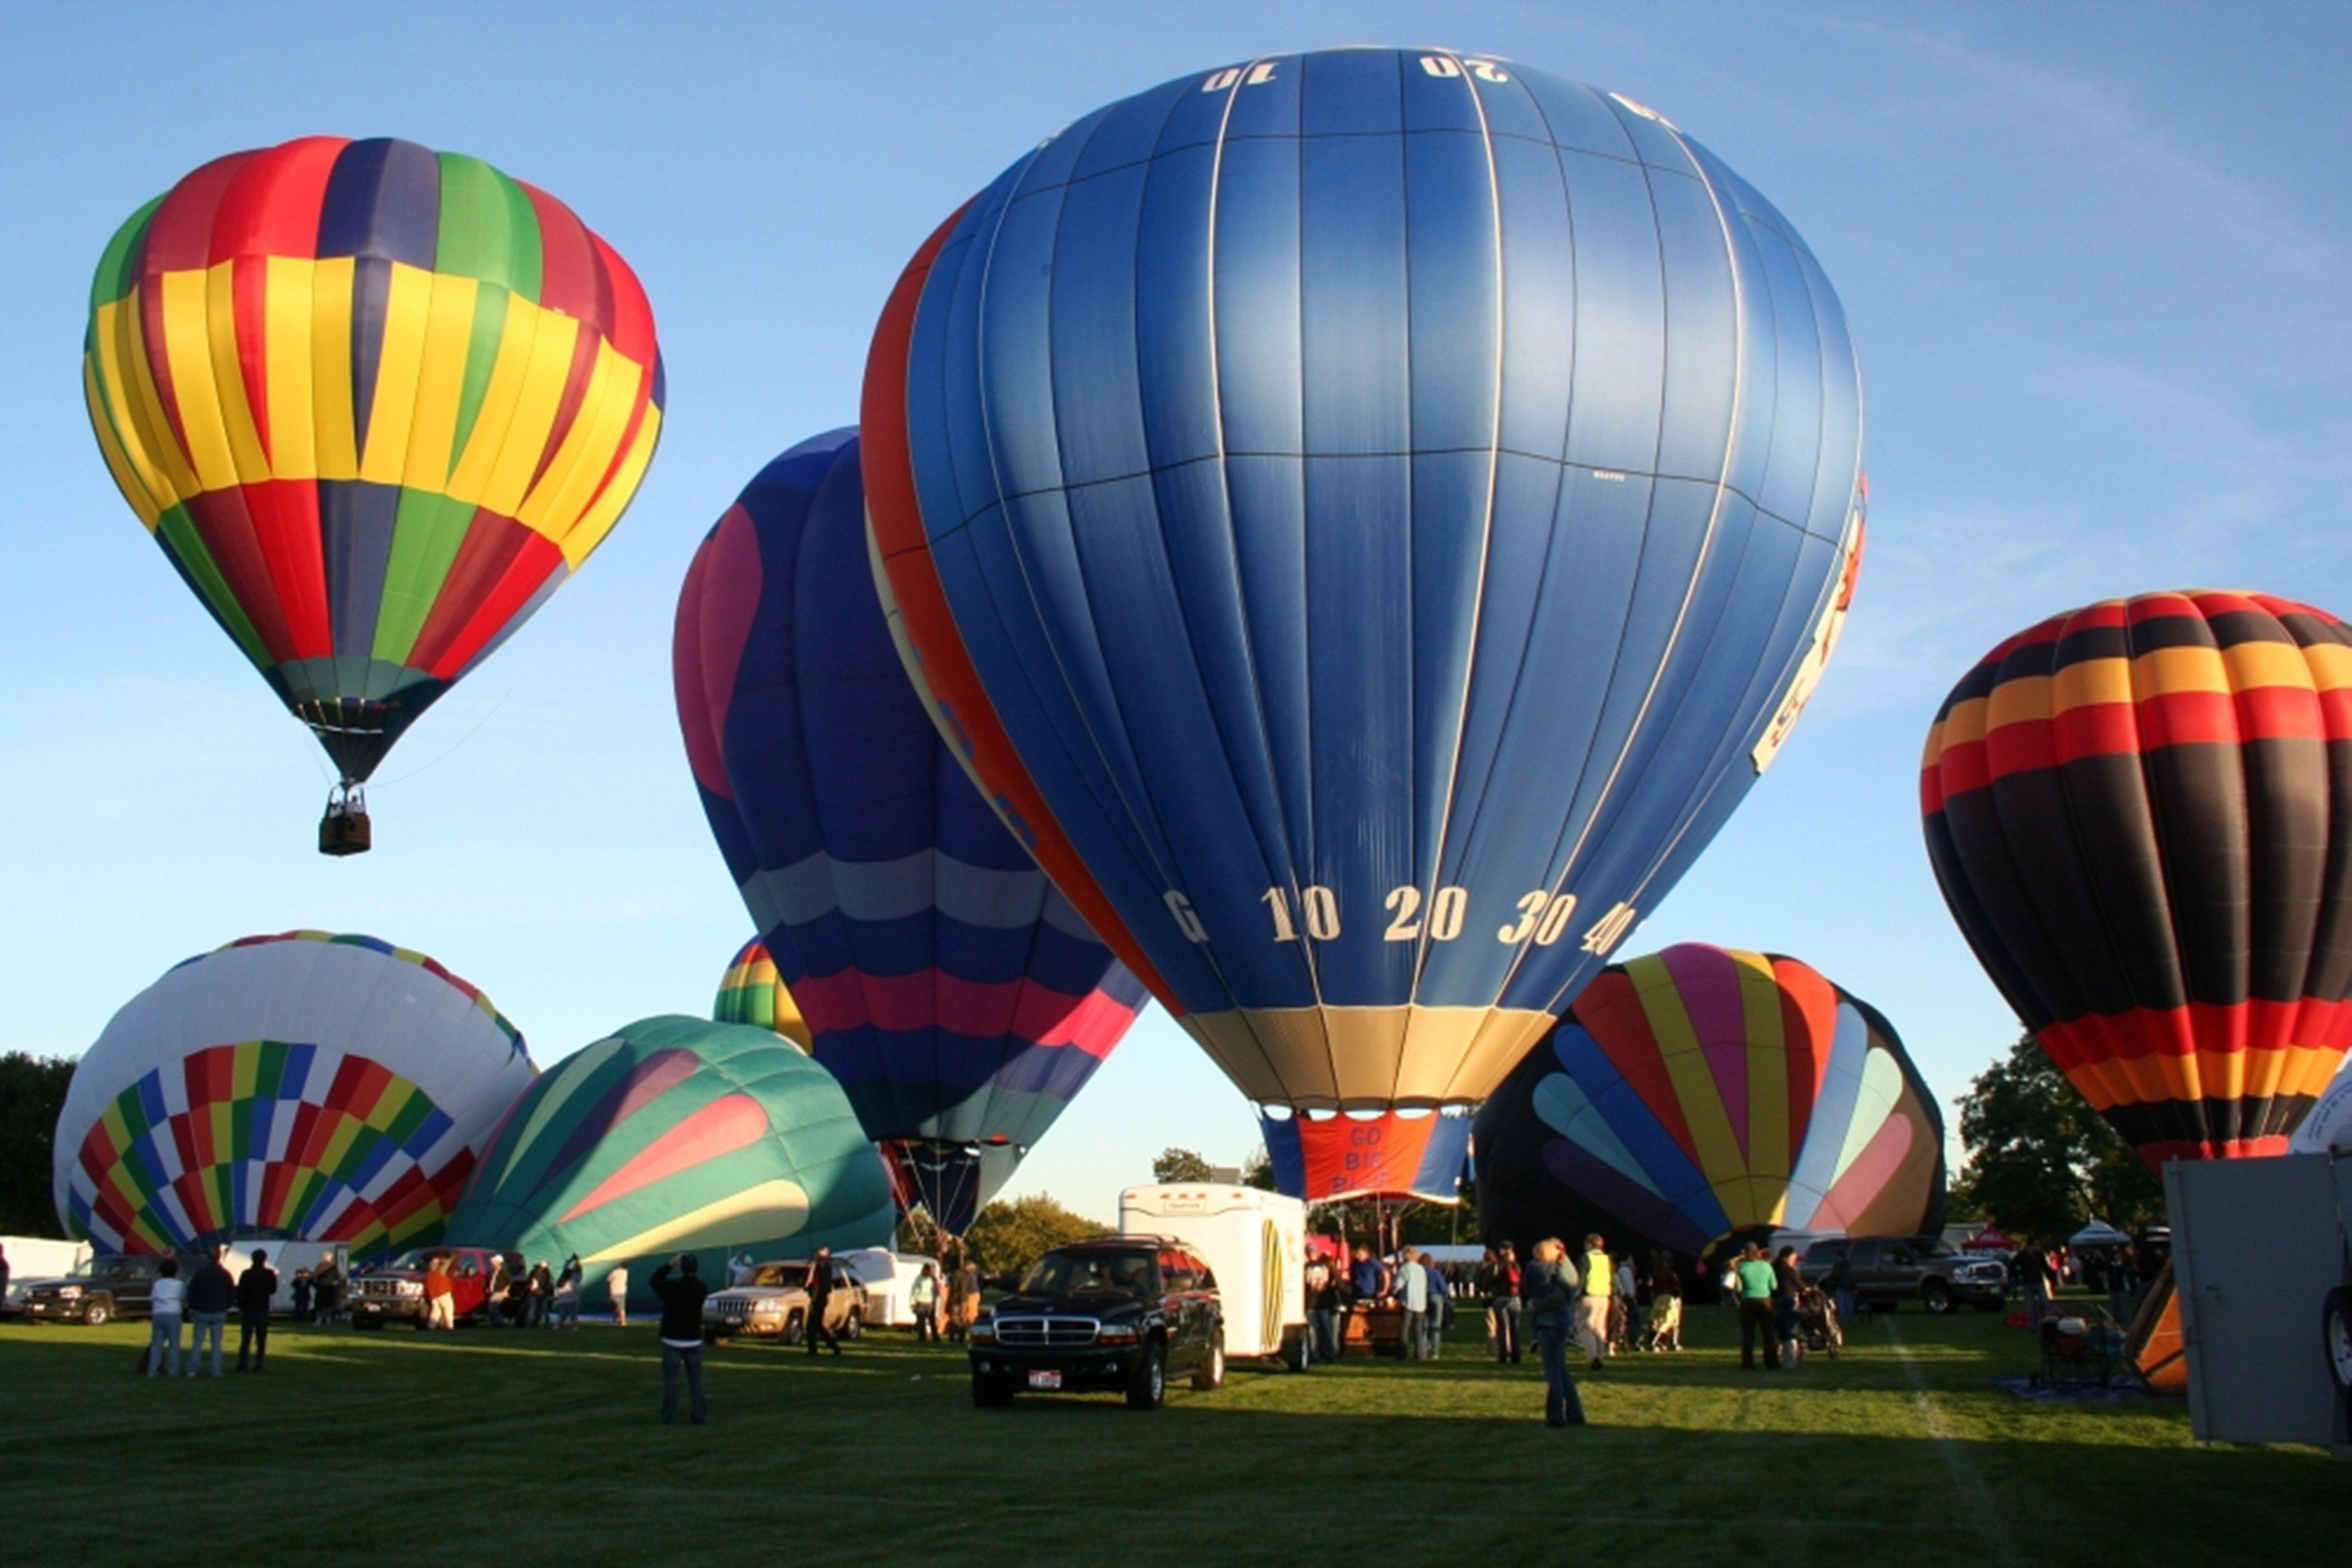 Spirit of Boise Balloon Festival